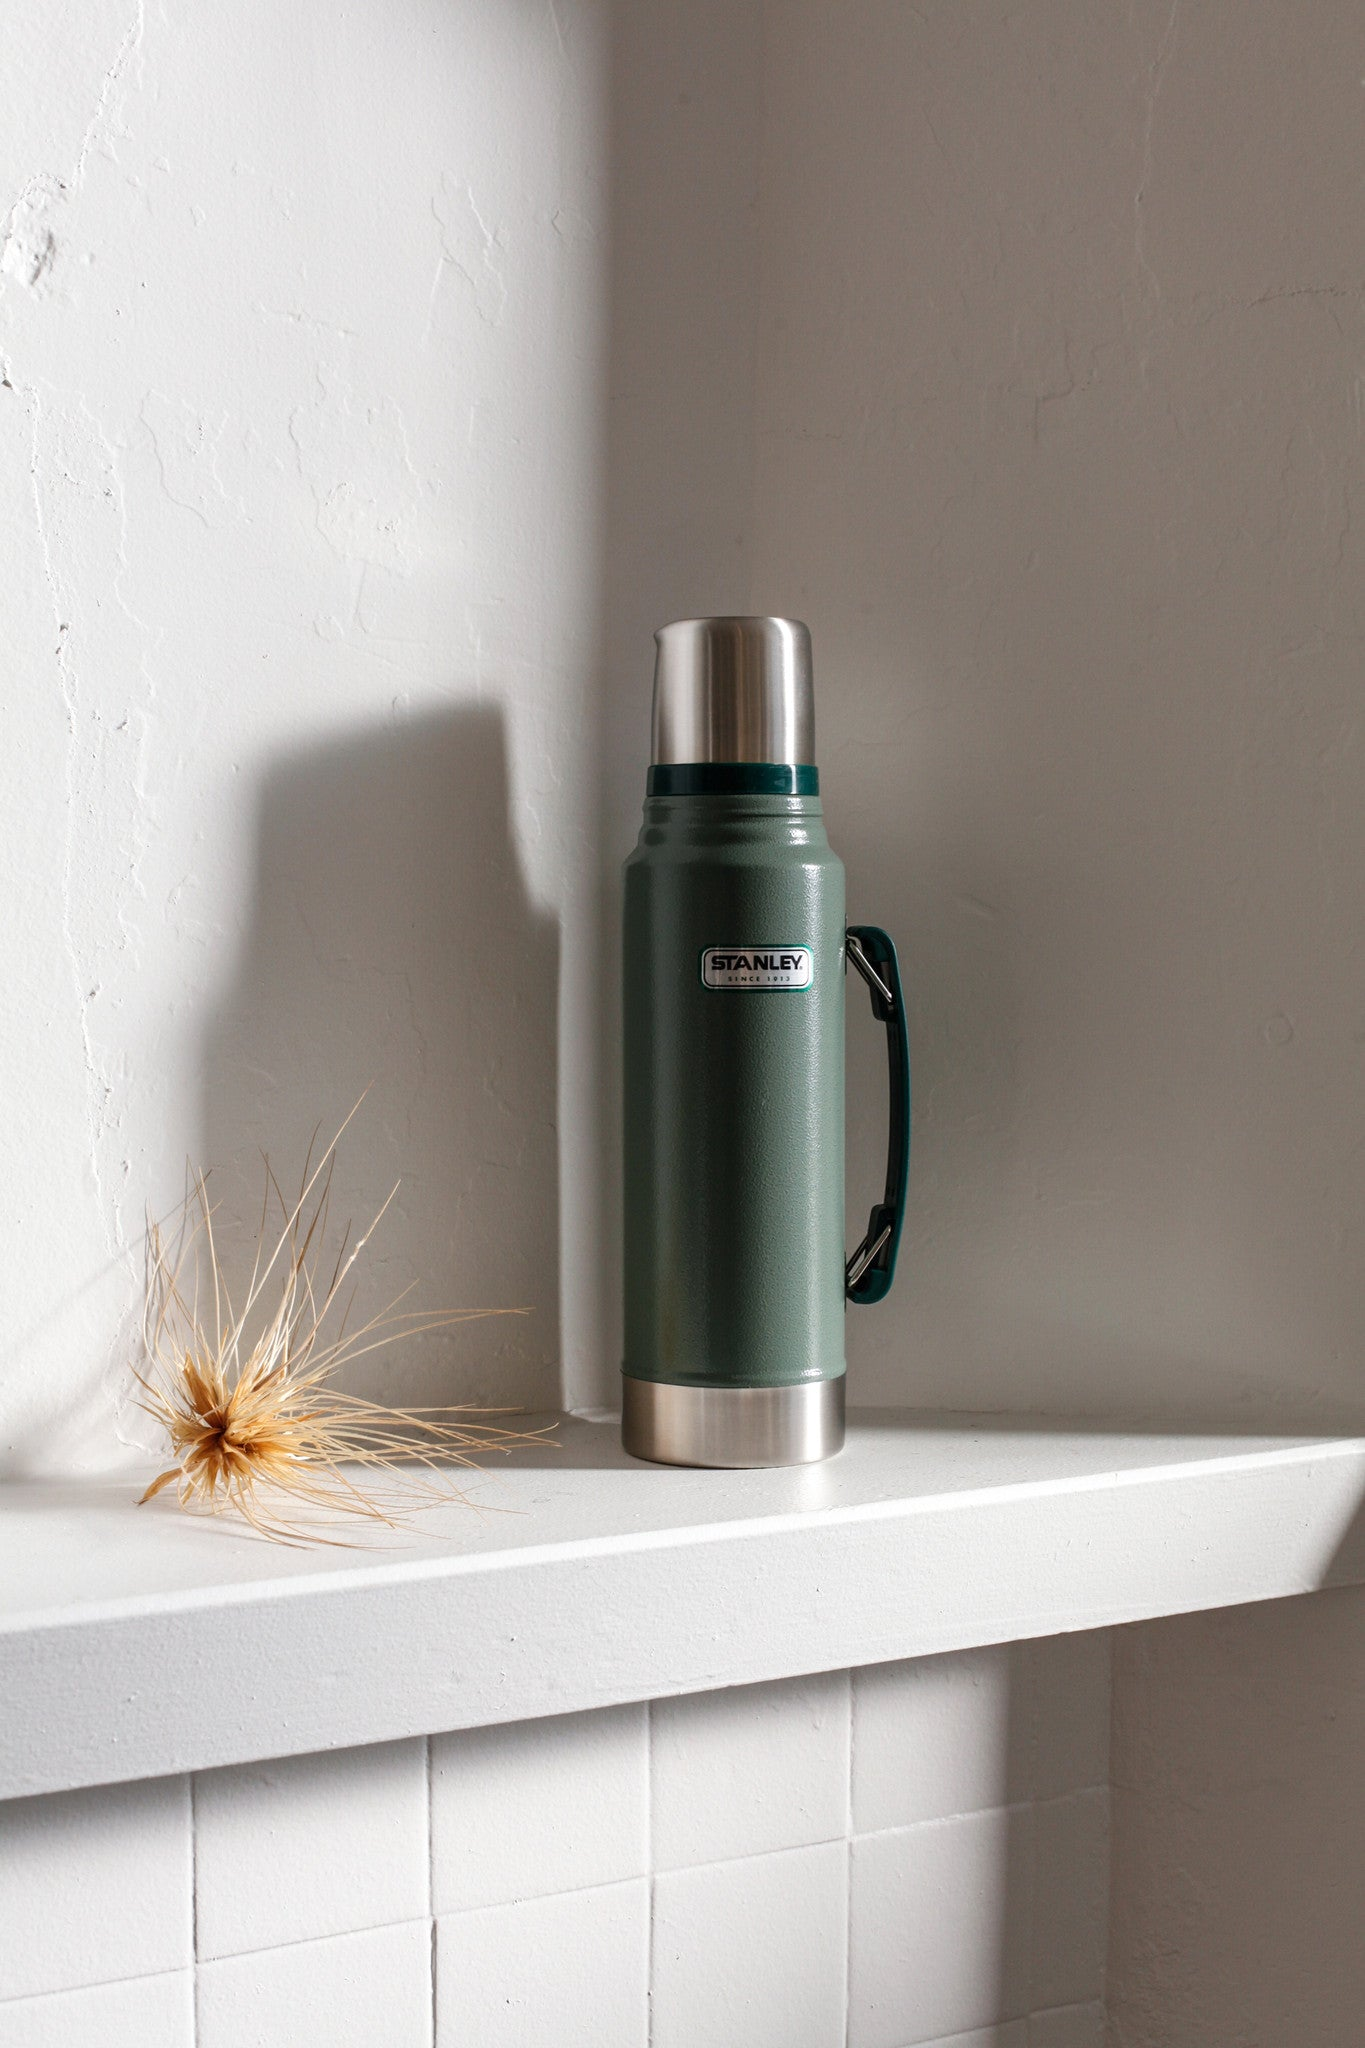 Stanley 1L Thermos